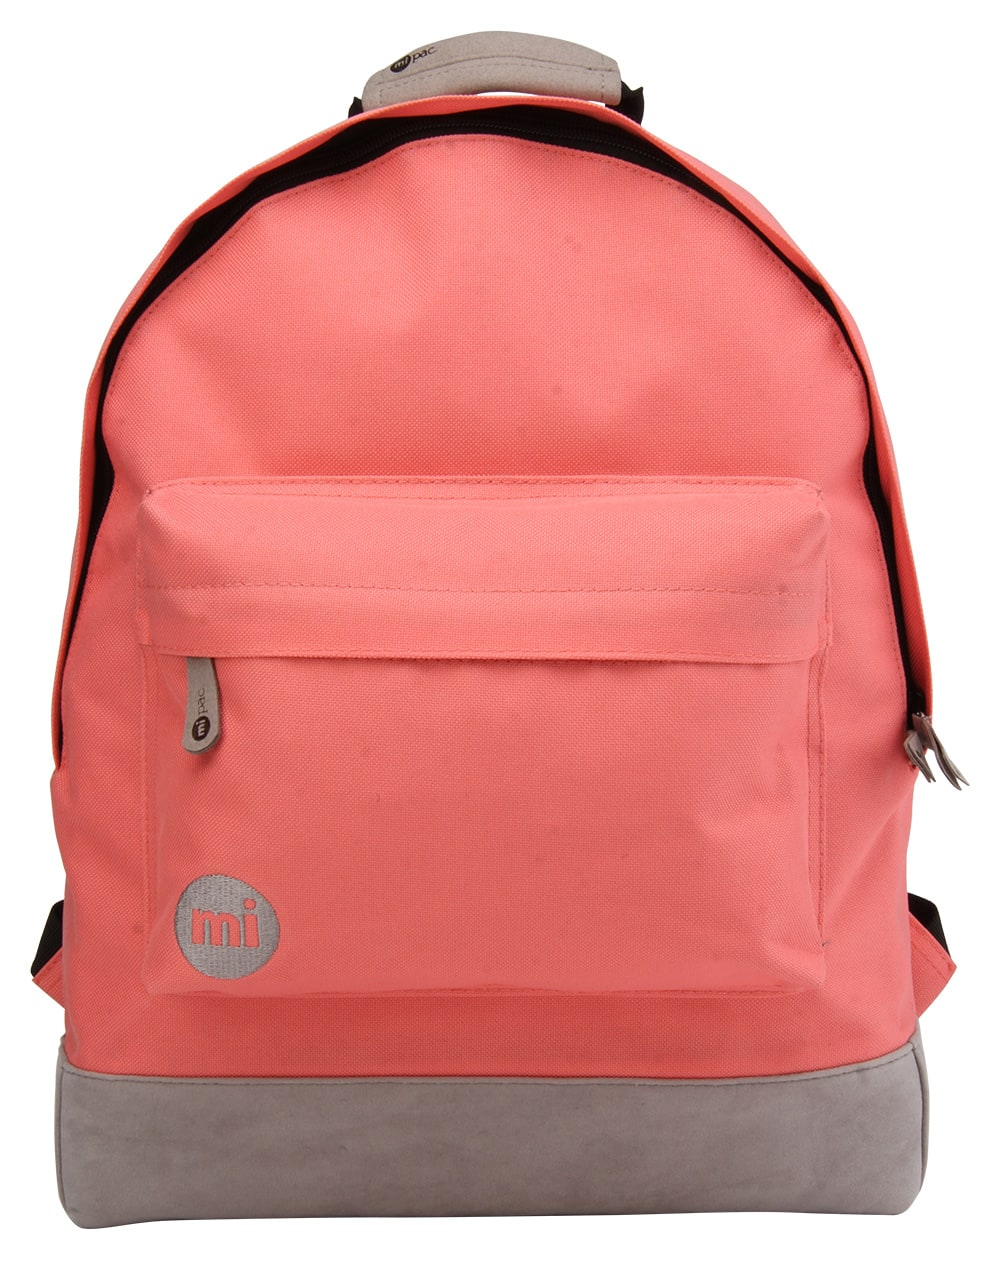 MiPac Classic Backpack  CoralGrey